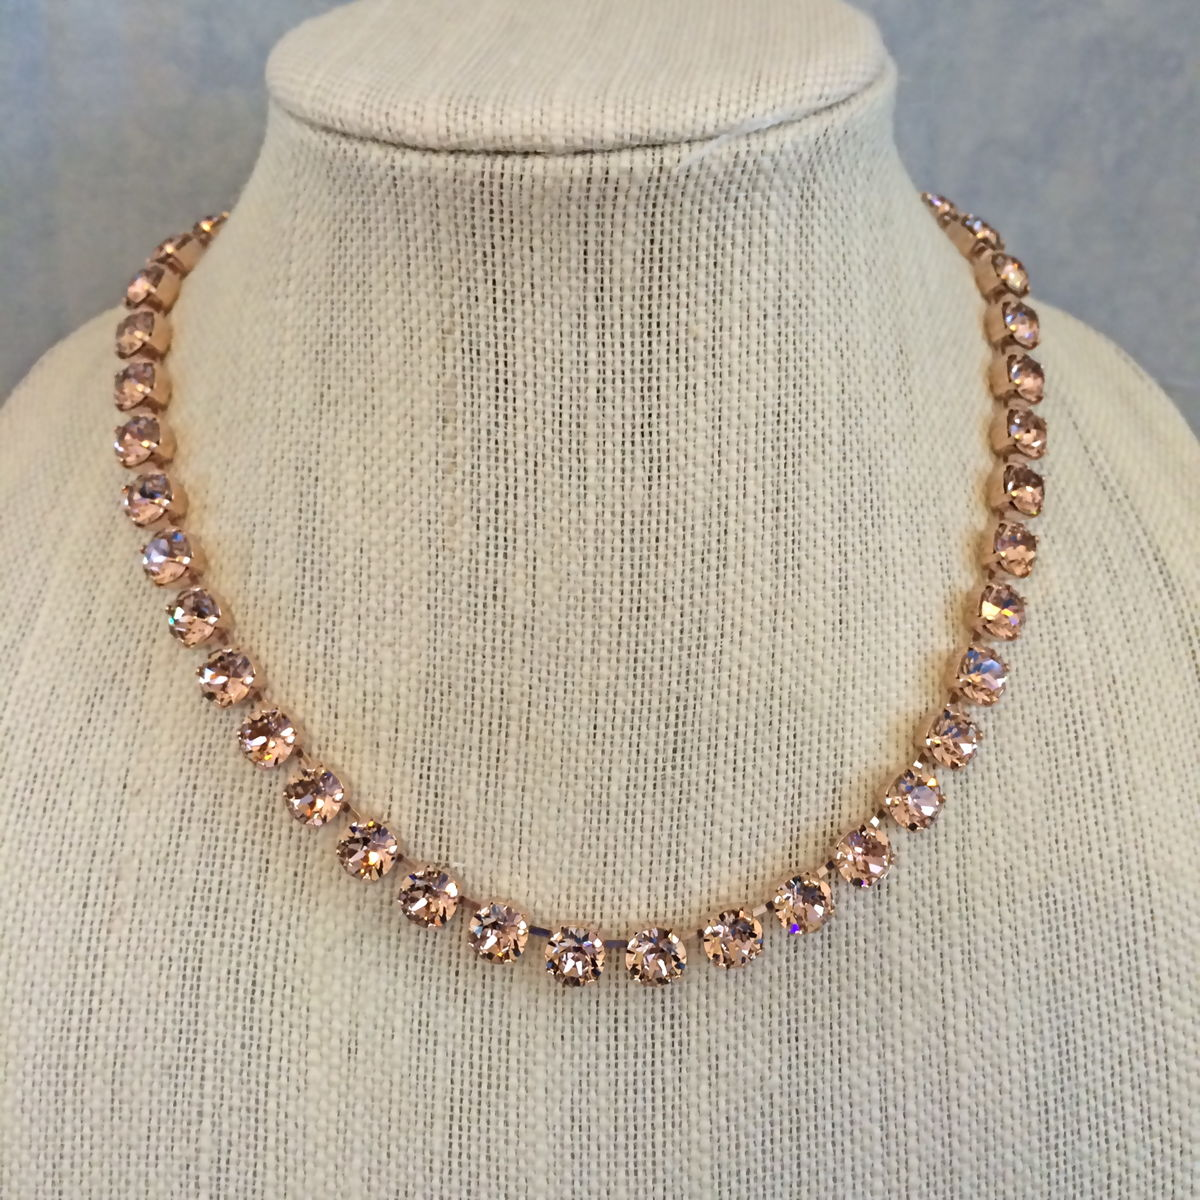 Blush Swarovski Crystal Rose Gold Princess Length Necklace Set The